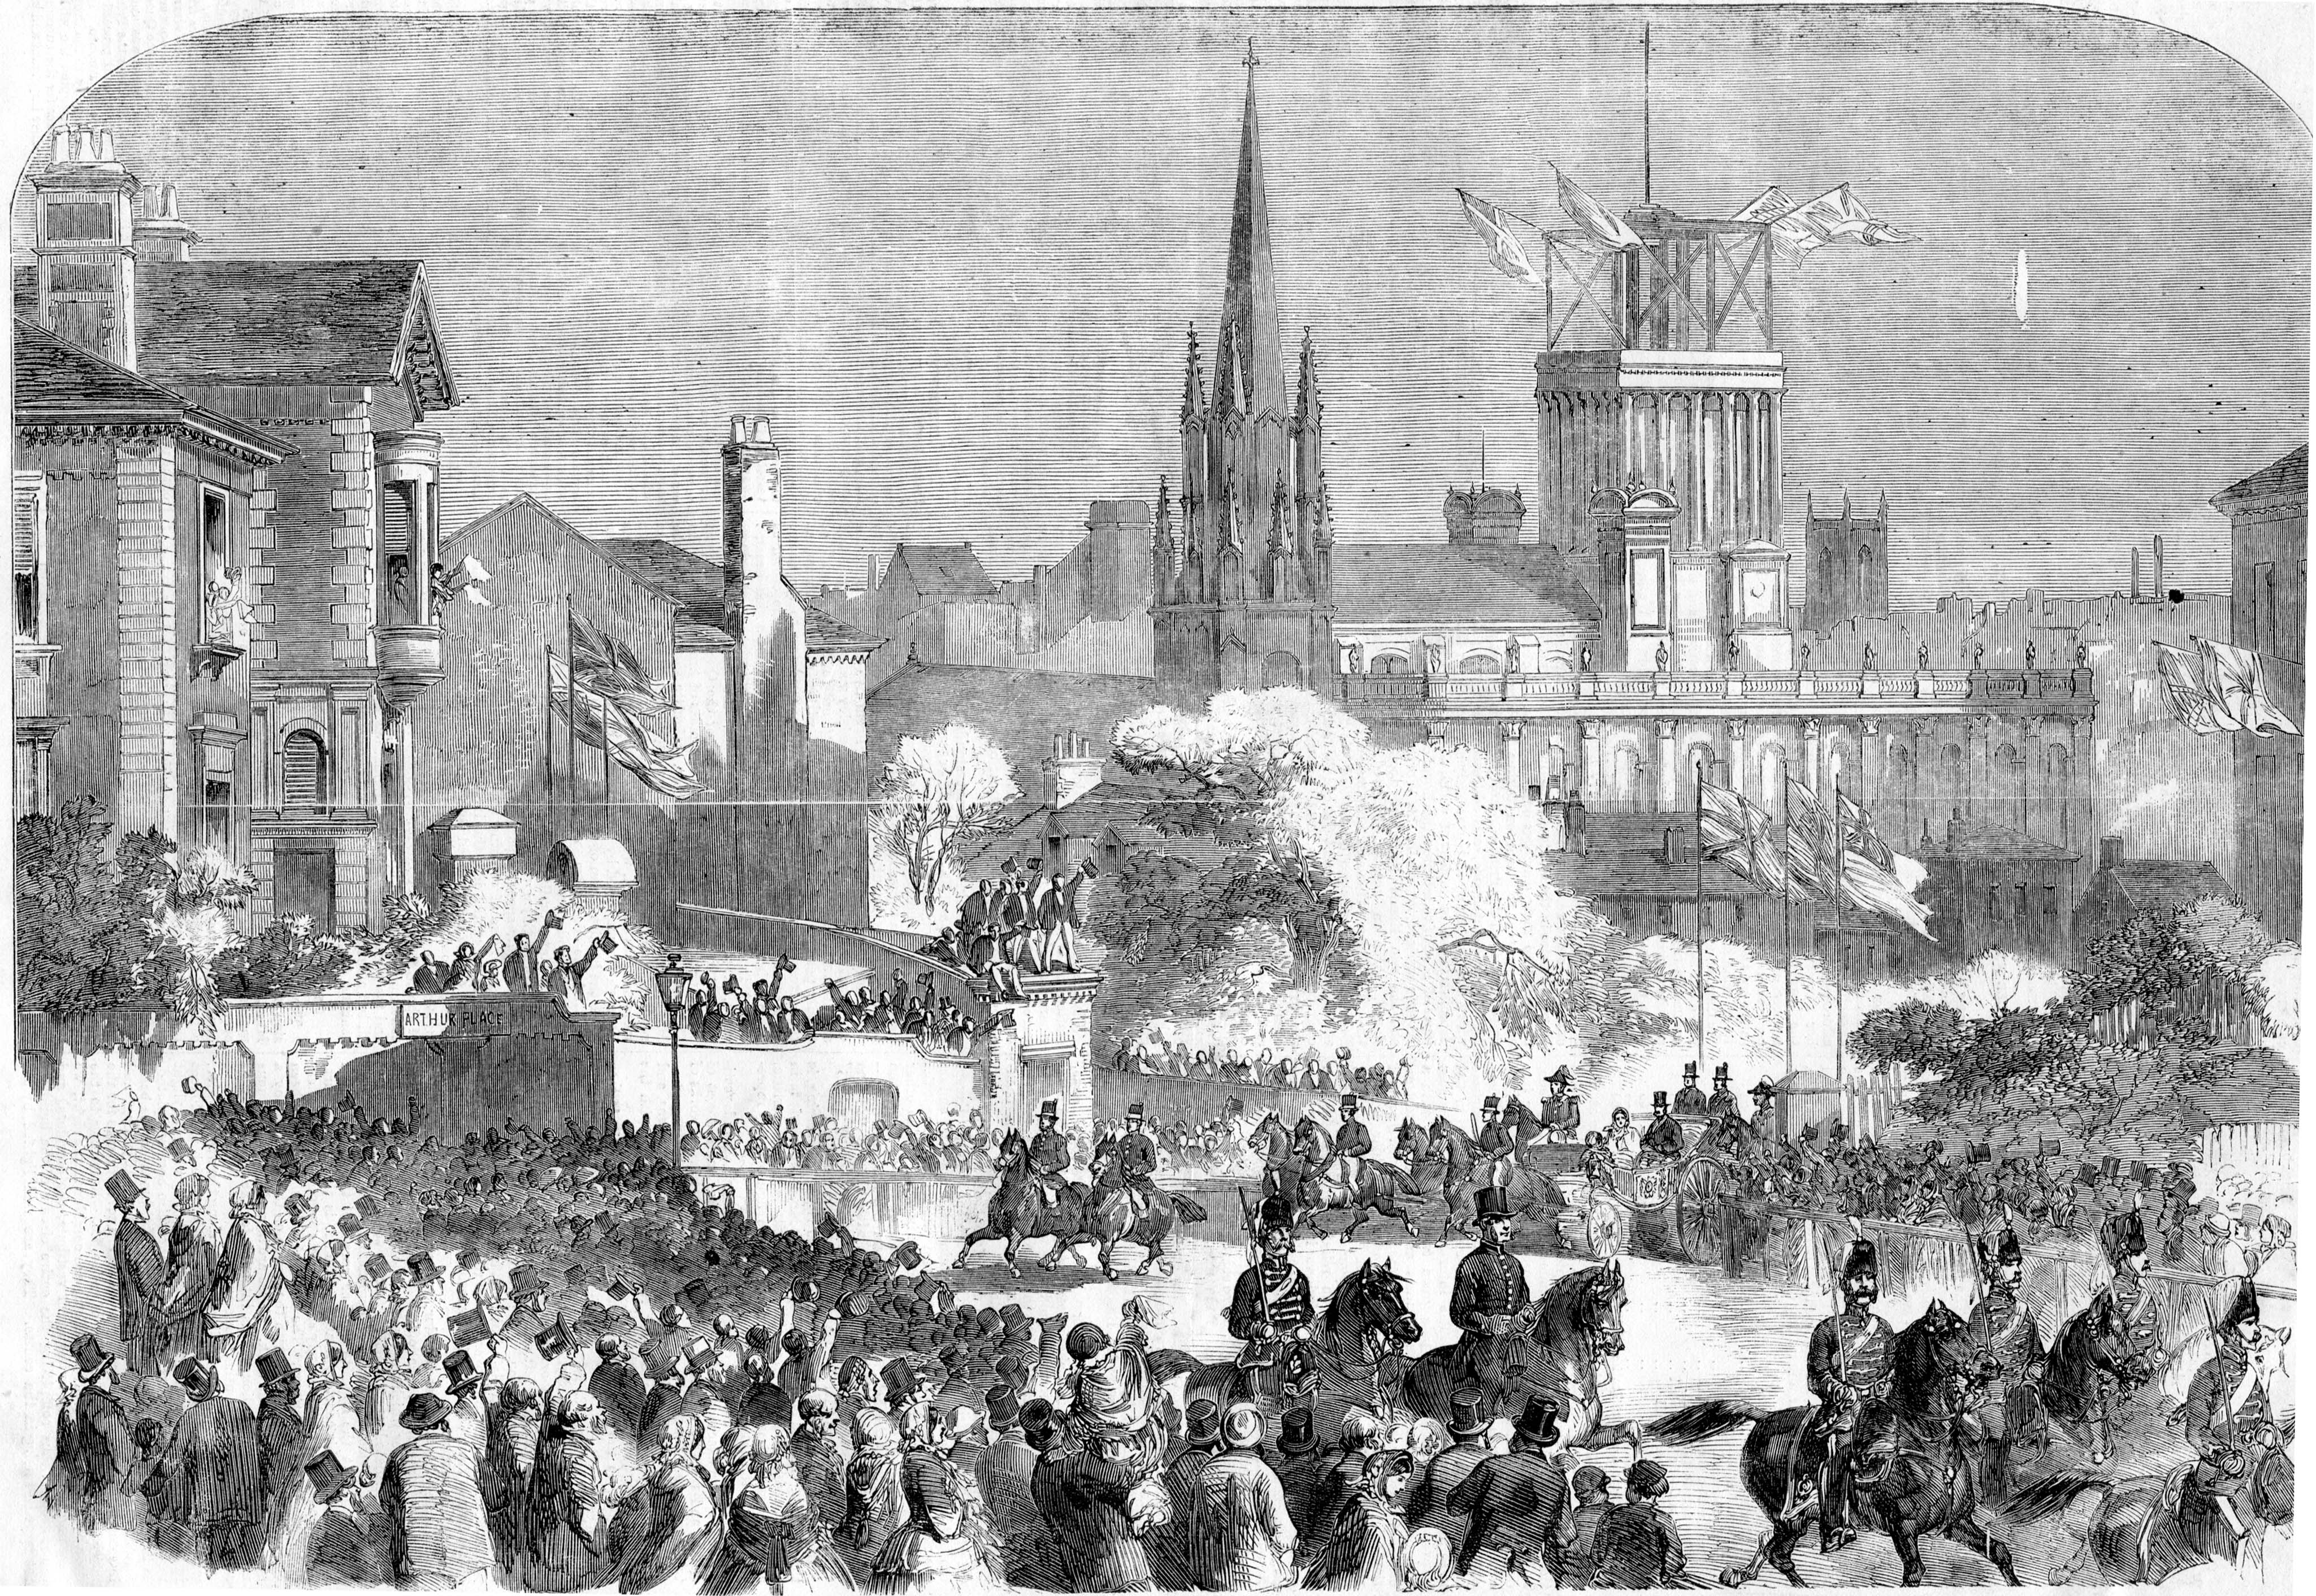 Black and white illustration showing the Queen and her large entourage in the streets.  Leeds Minster can be seen in the background